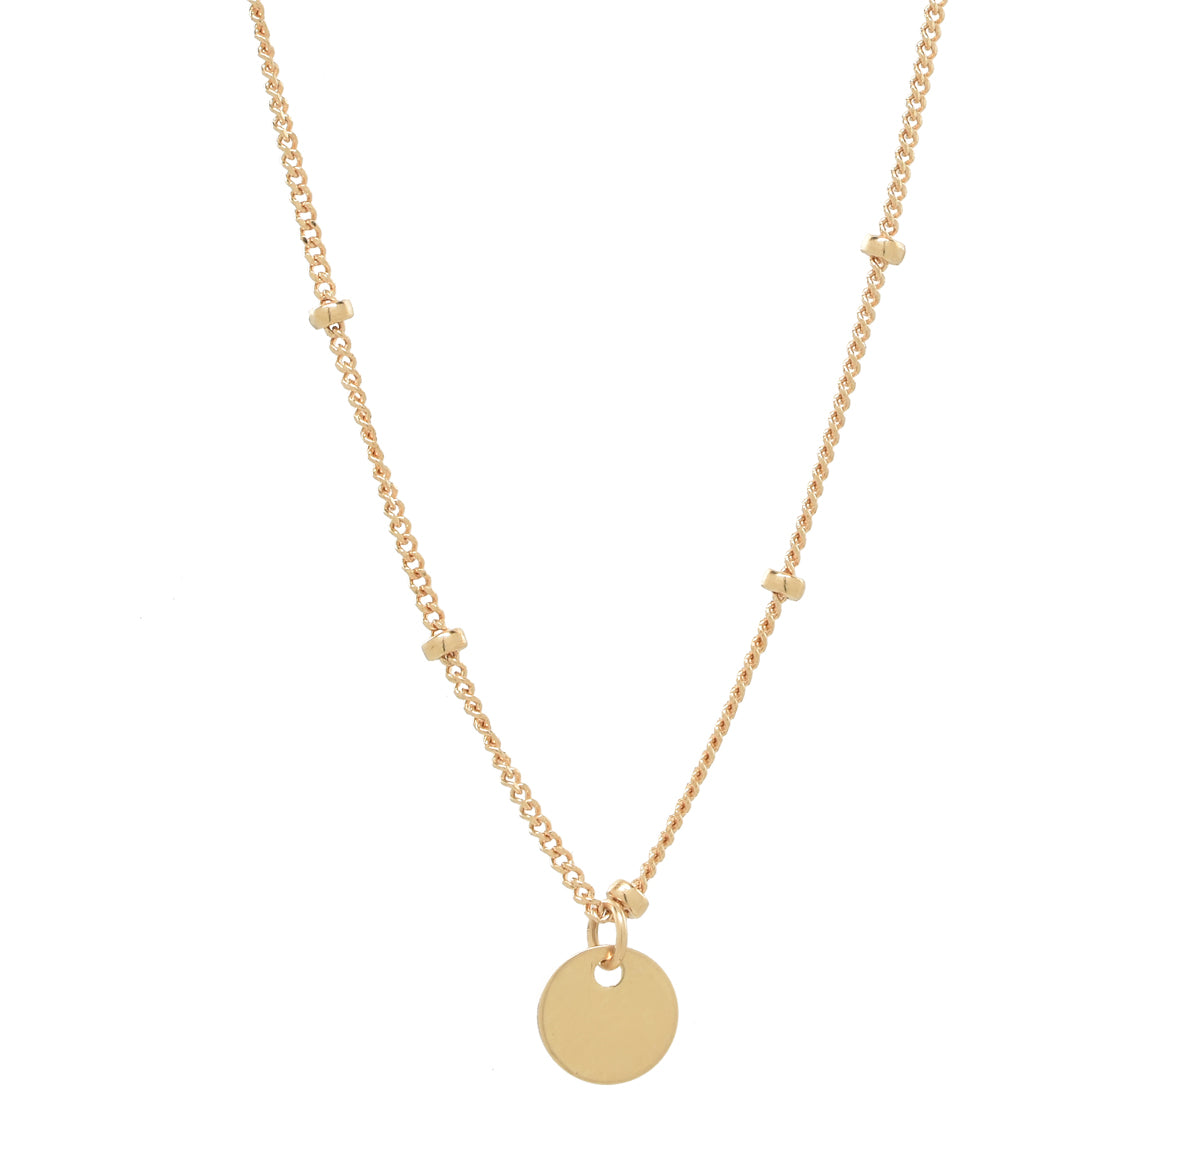 Solid Gold Tiny Disc Ball Chain Necklace